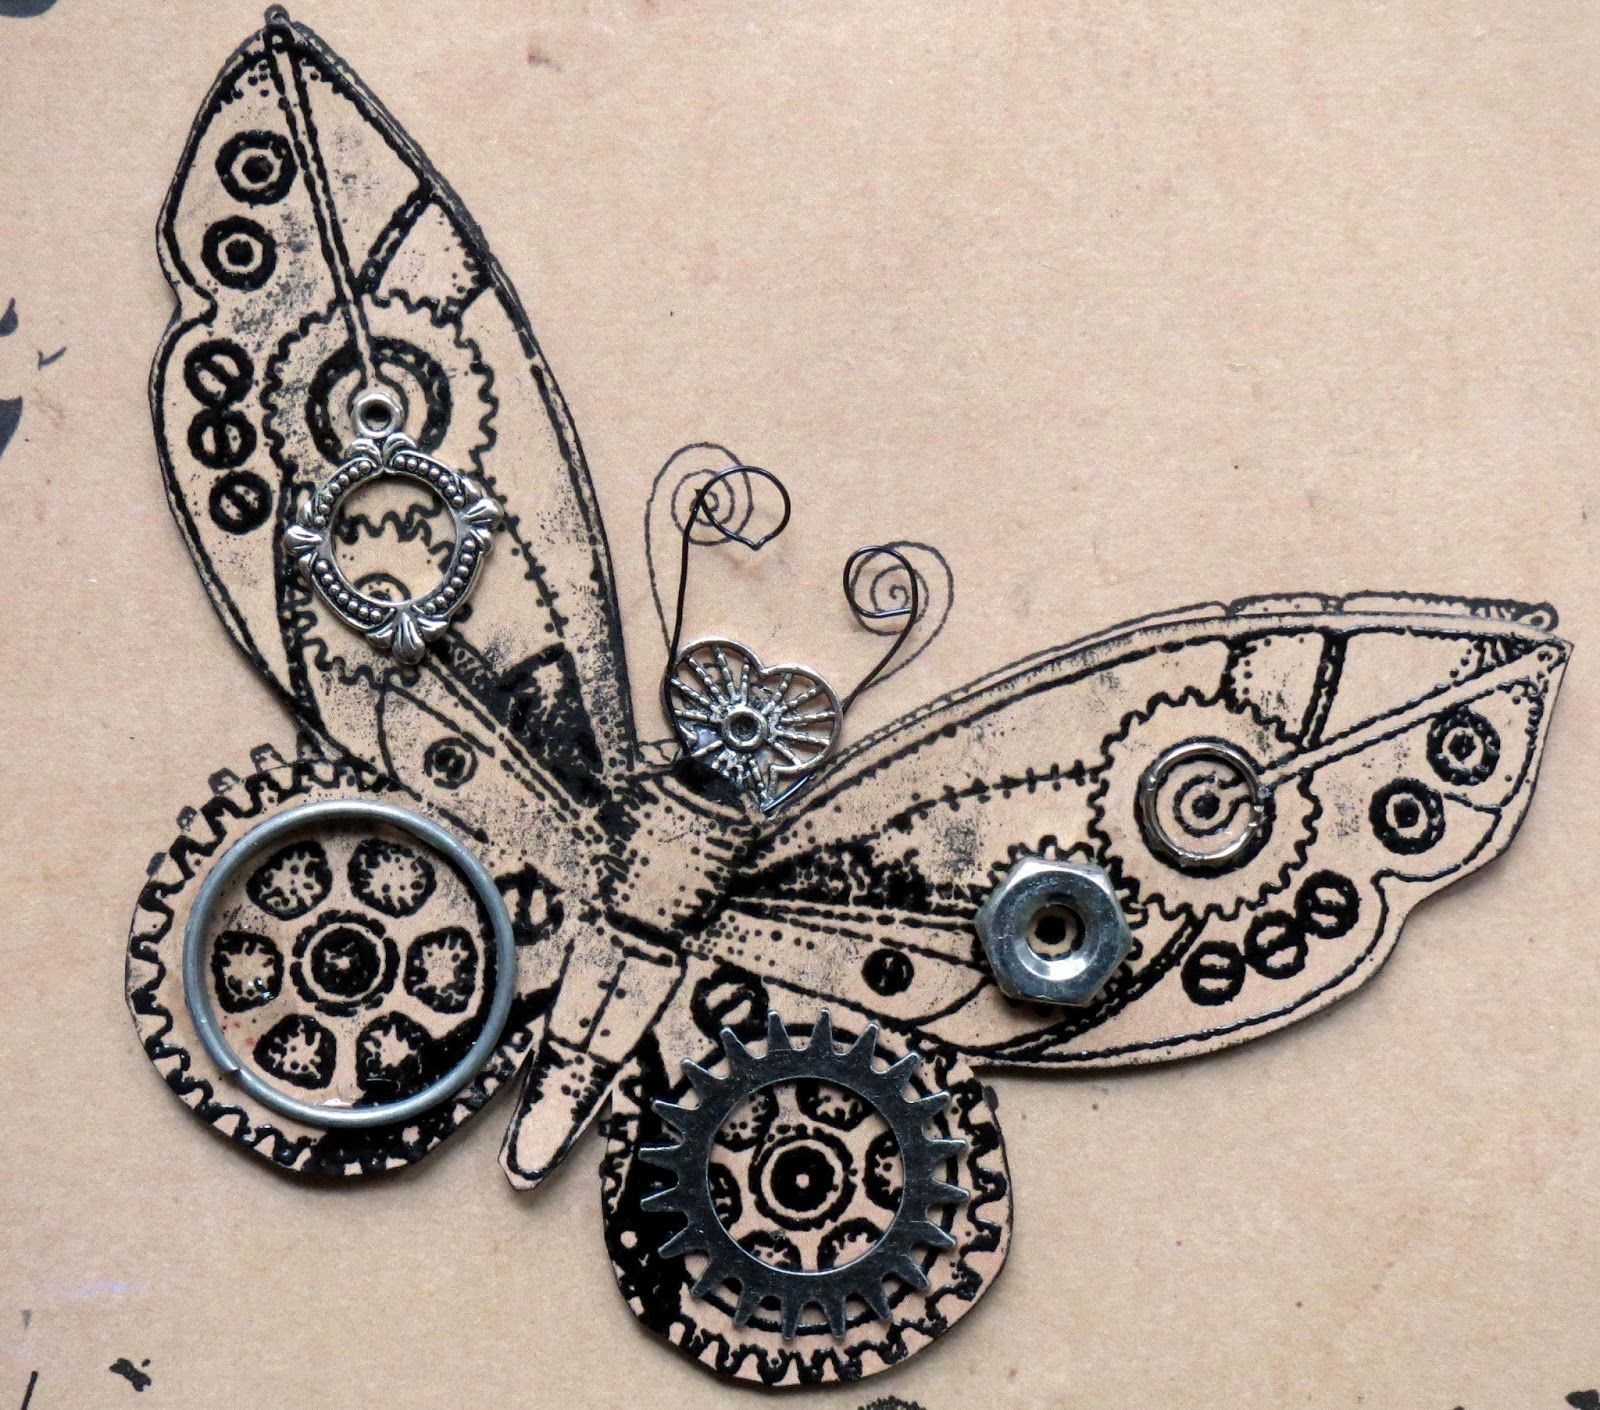 c15f970ca Steampunk Butterfly | my girly side | Steampunk drawing, Steampunk ...